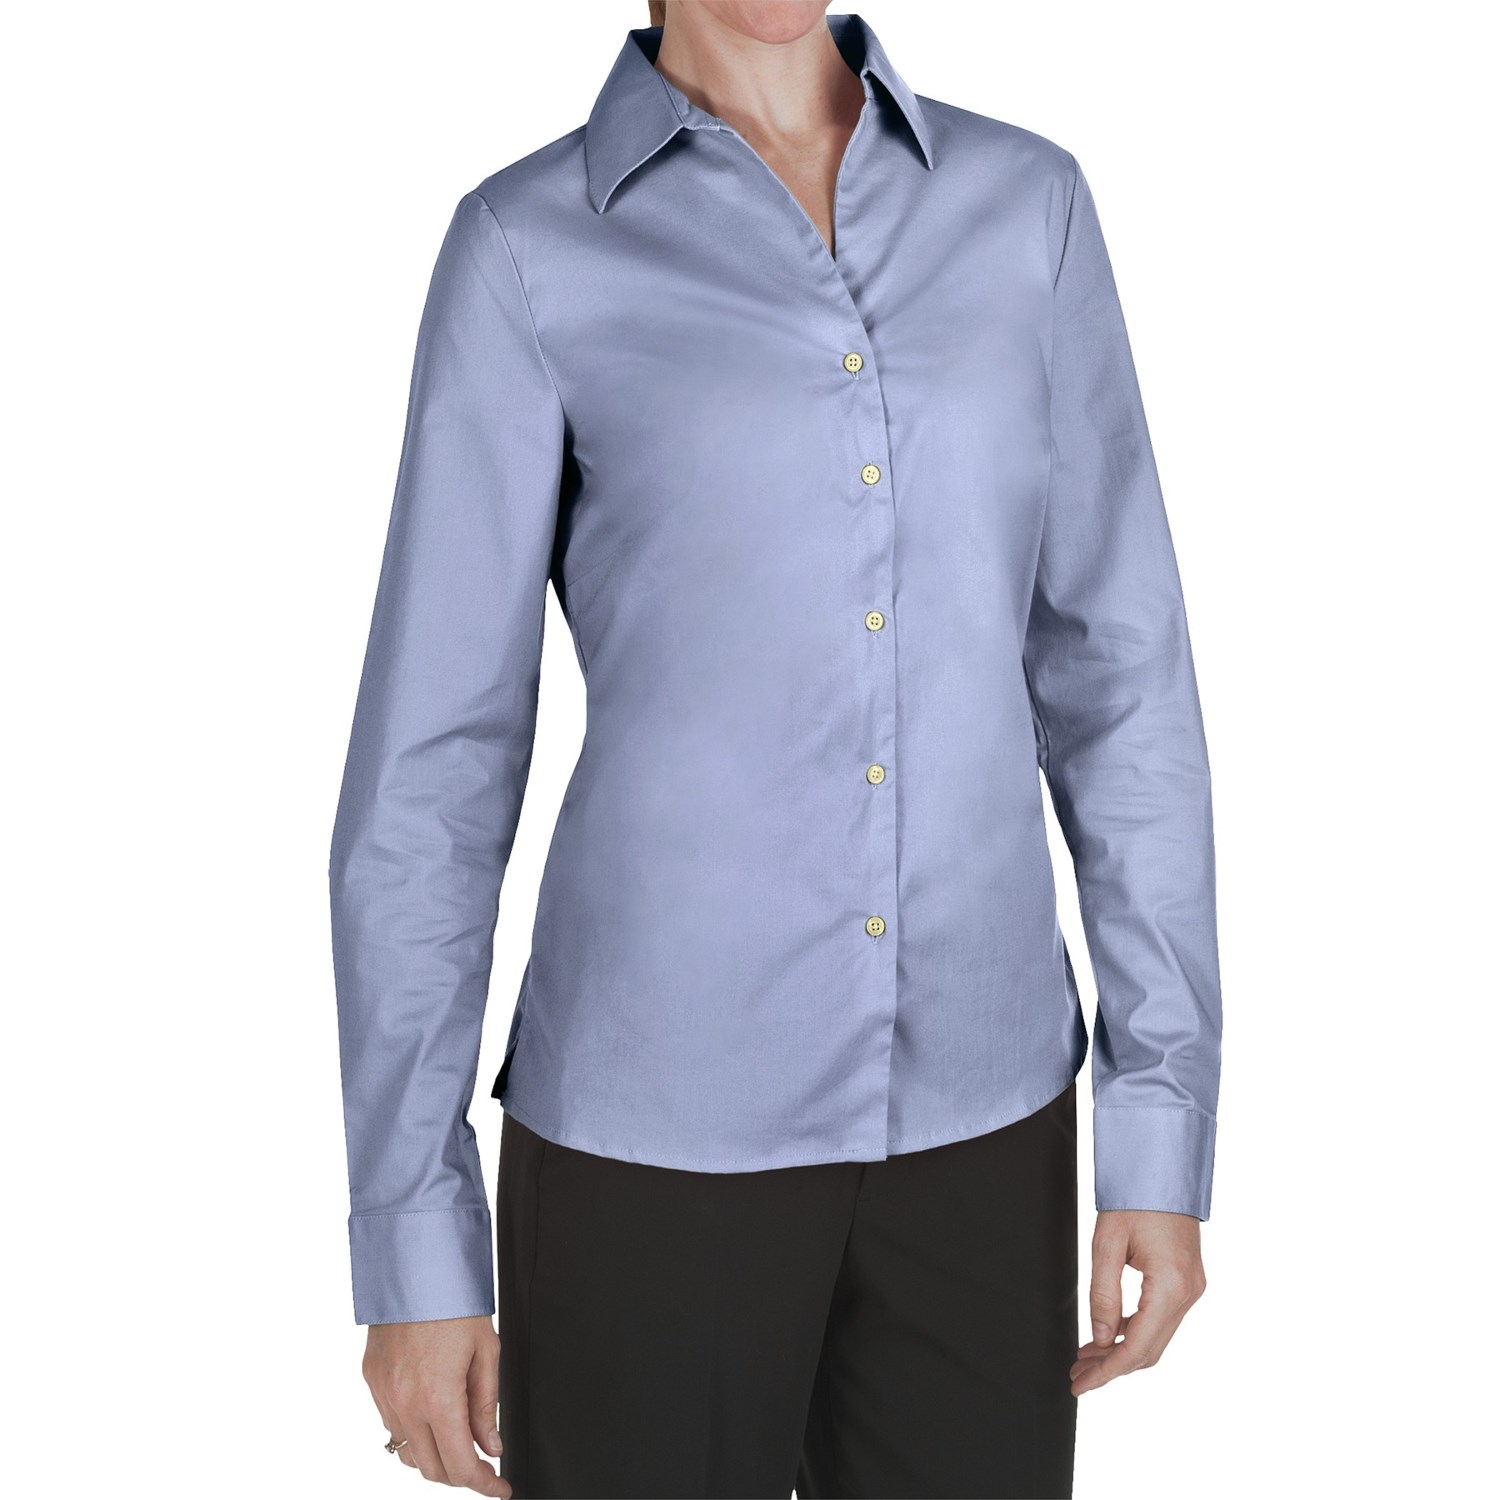 outer banks ultimate wrinkle resistant dress shirt for